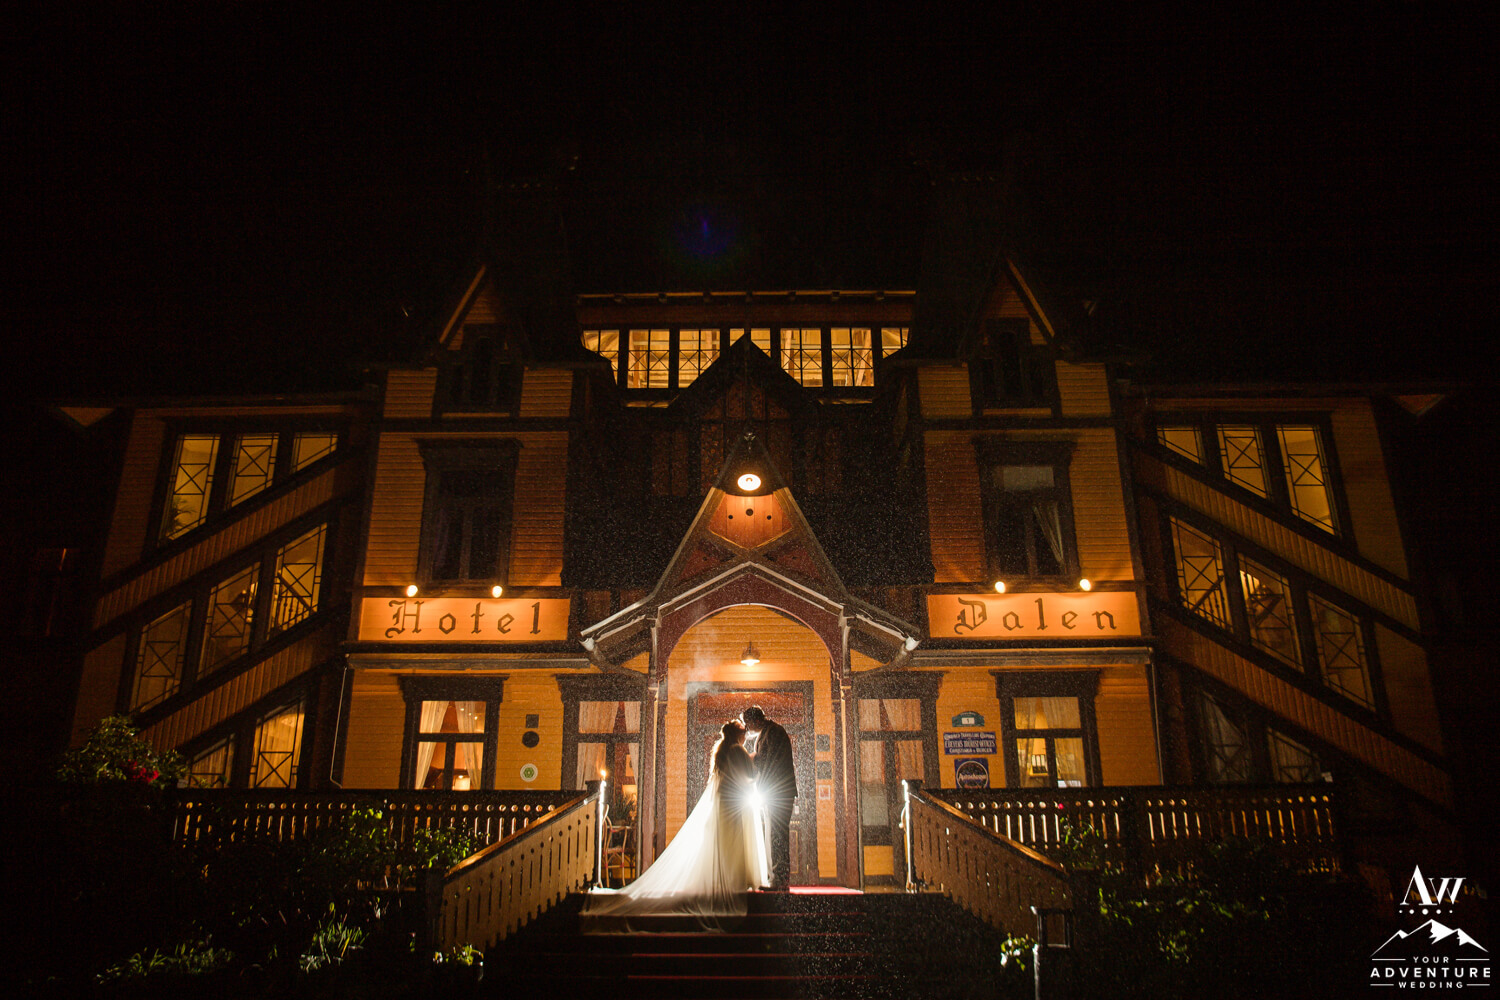 The Dalen Hotel Nighttime Wedding Photo